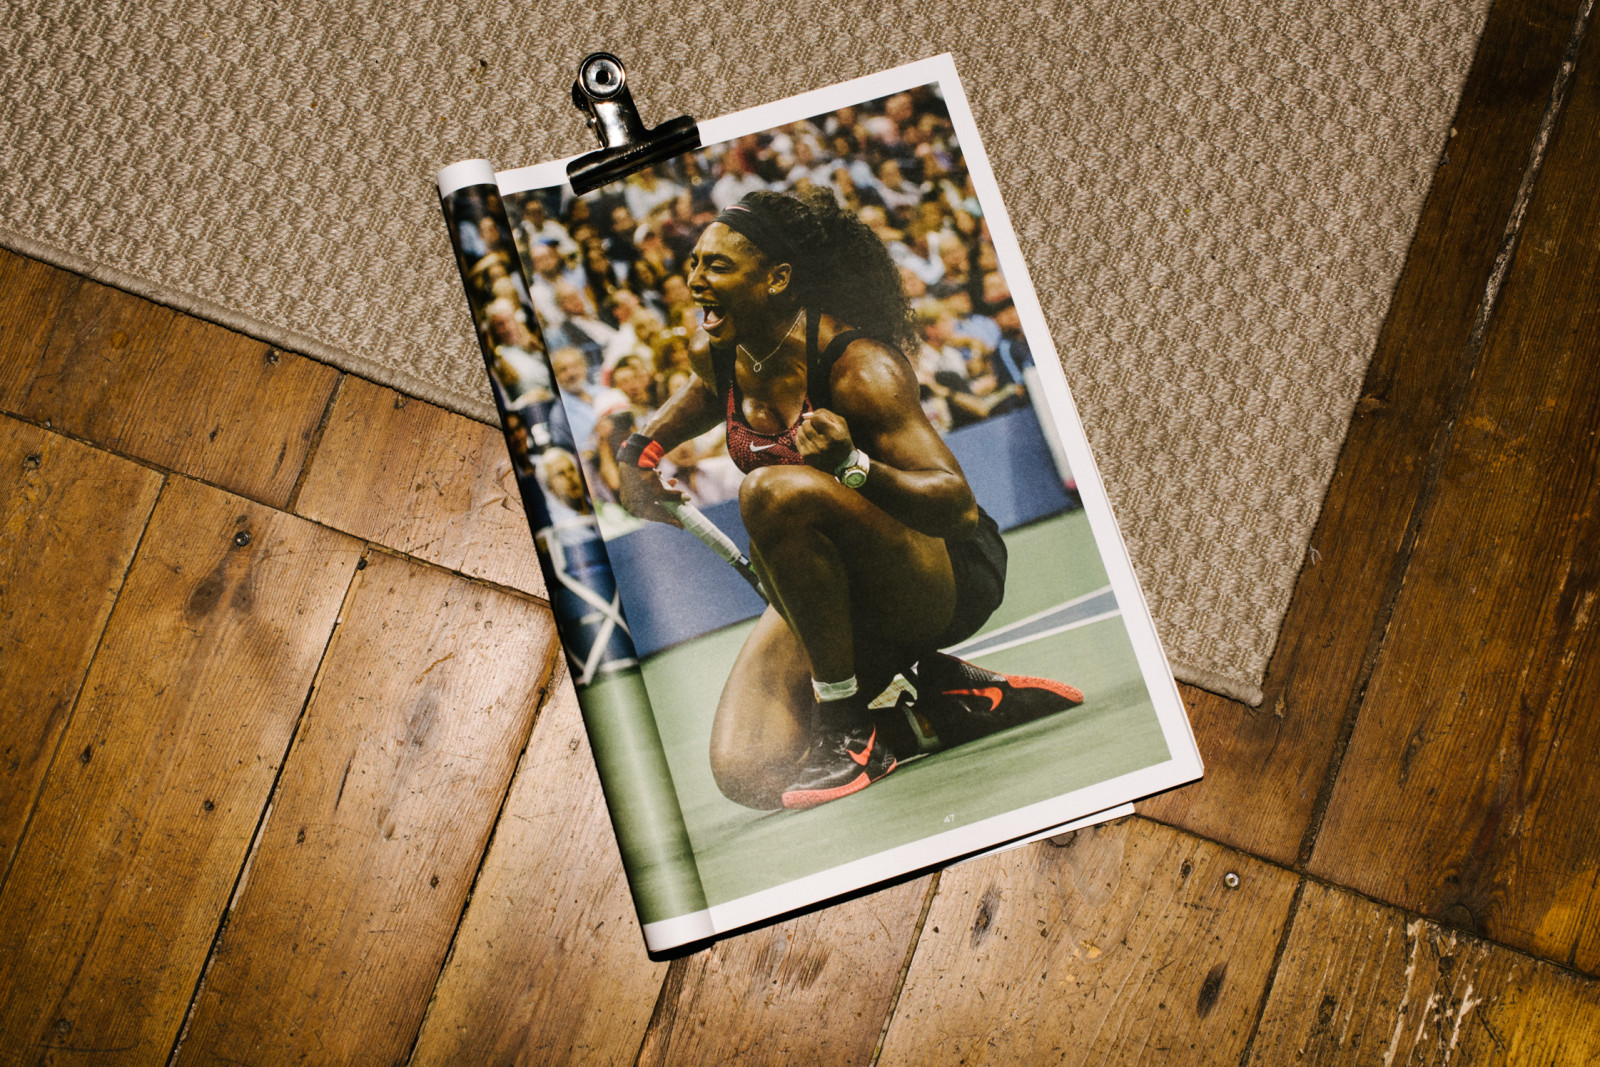 Serena Williams celebrating a victory over her sister, Venus. Taken from a photographic essay on the two tennis superstars.